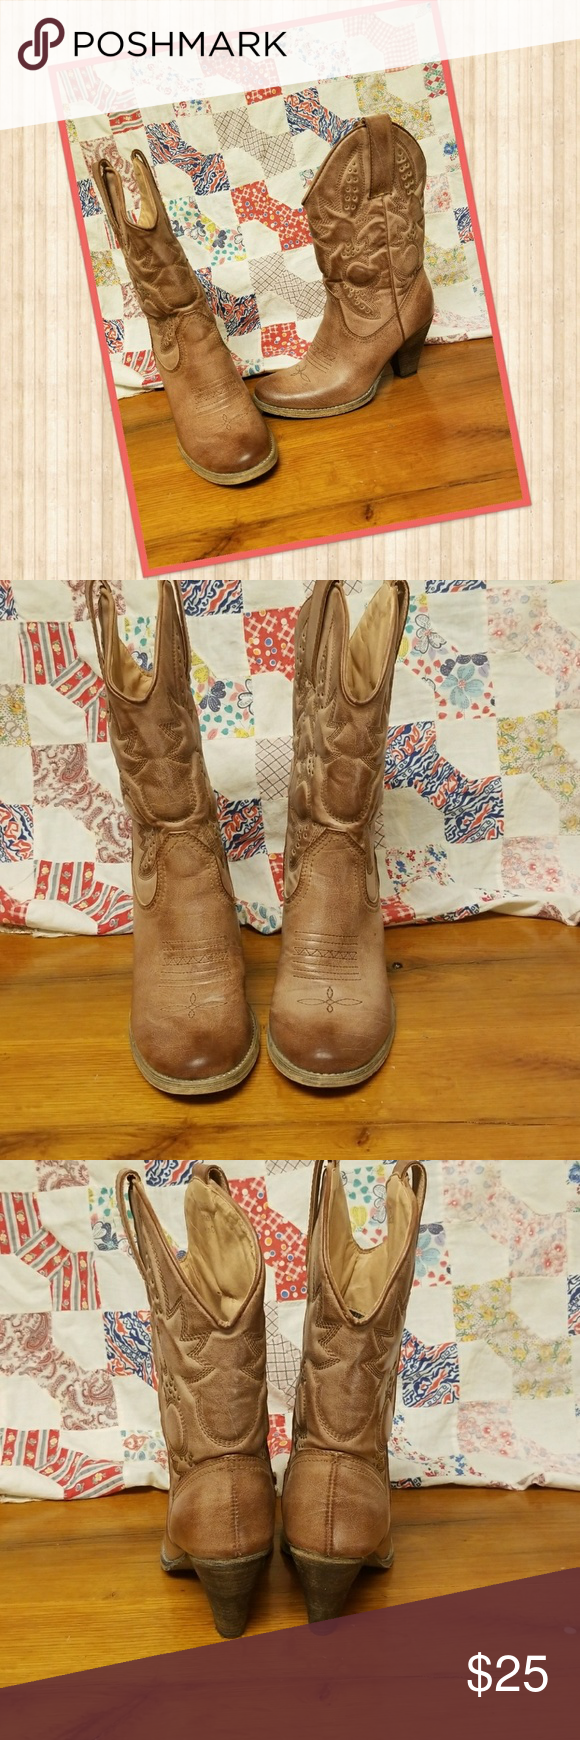 Cowgirl boots Adorable tan cowgirl boots in gently used condition. Only 2 minor flaws as shown in pictures 5 and 6. The chip on the heel can be easily fixed with a little super glue. Other than that they are in great condition.  Brand is (very volatile) listed under free people for vews. Free People Shoes Heeled Boots